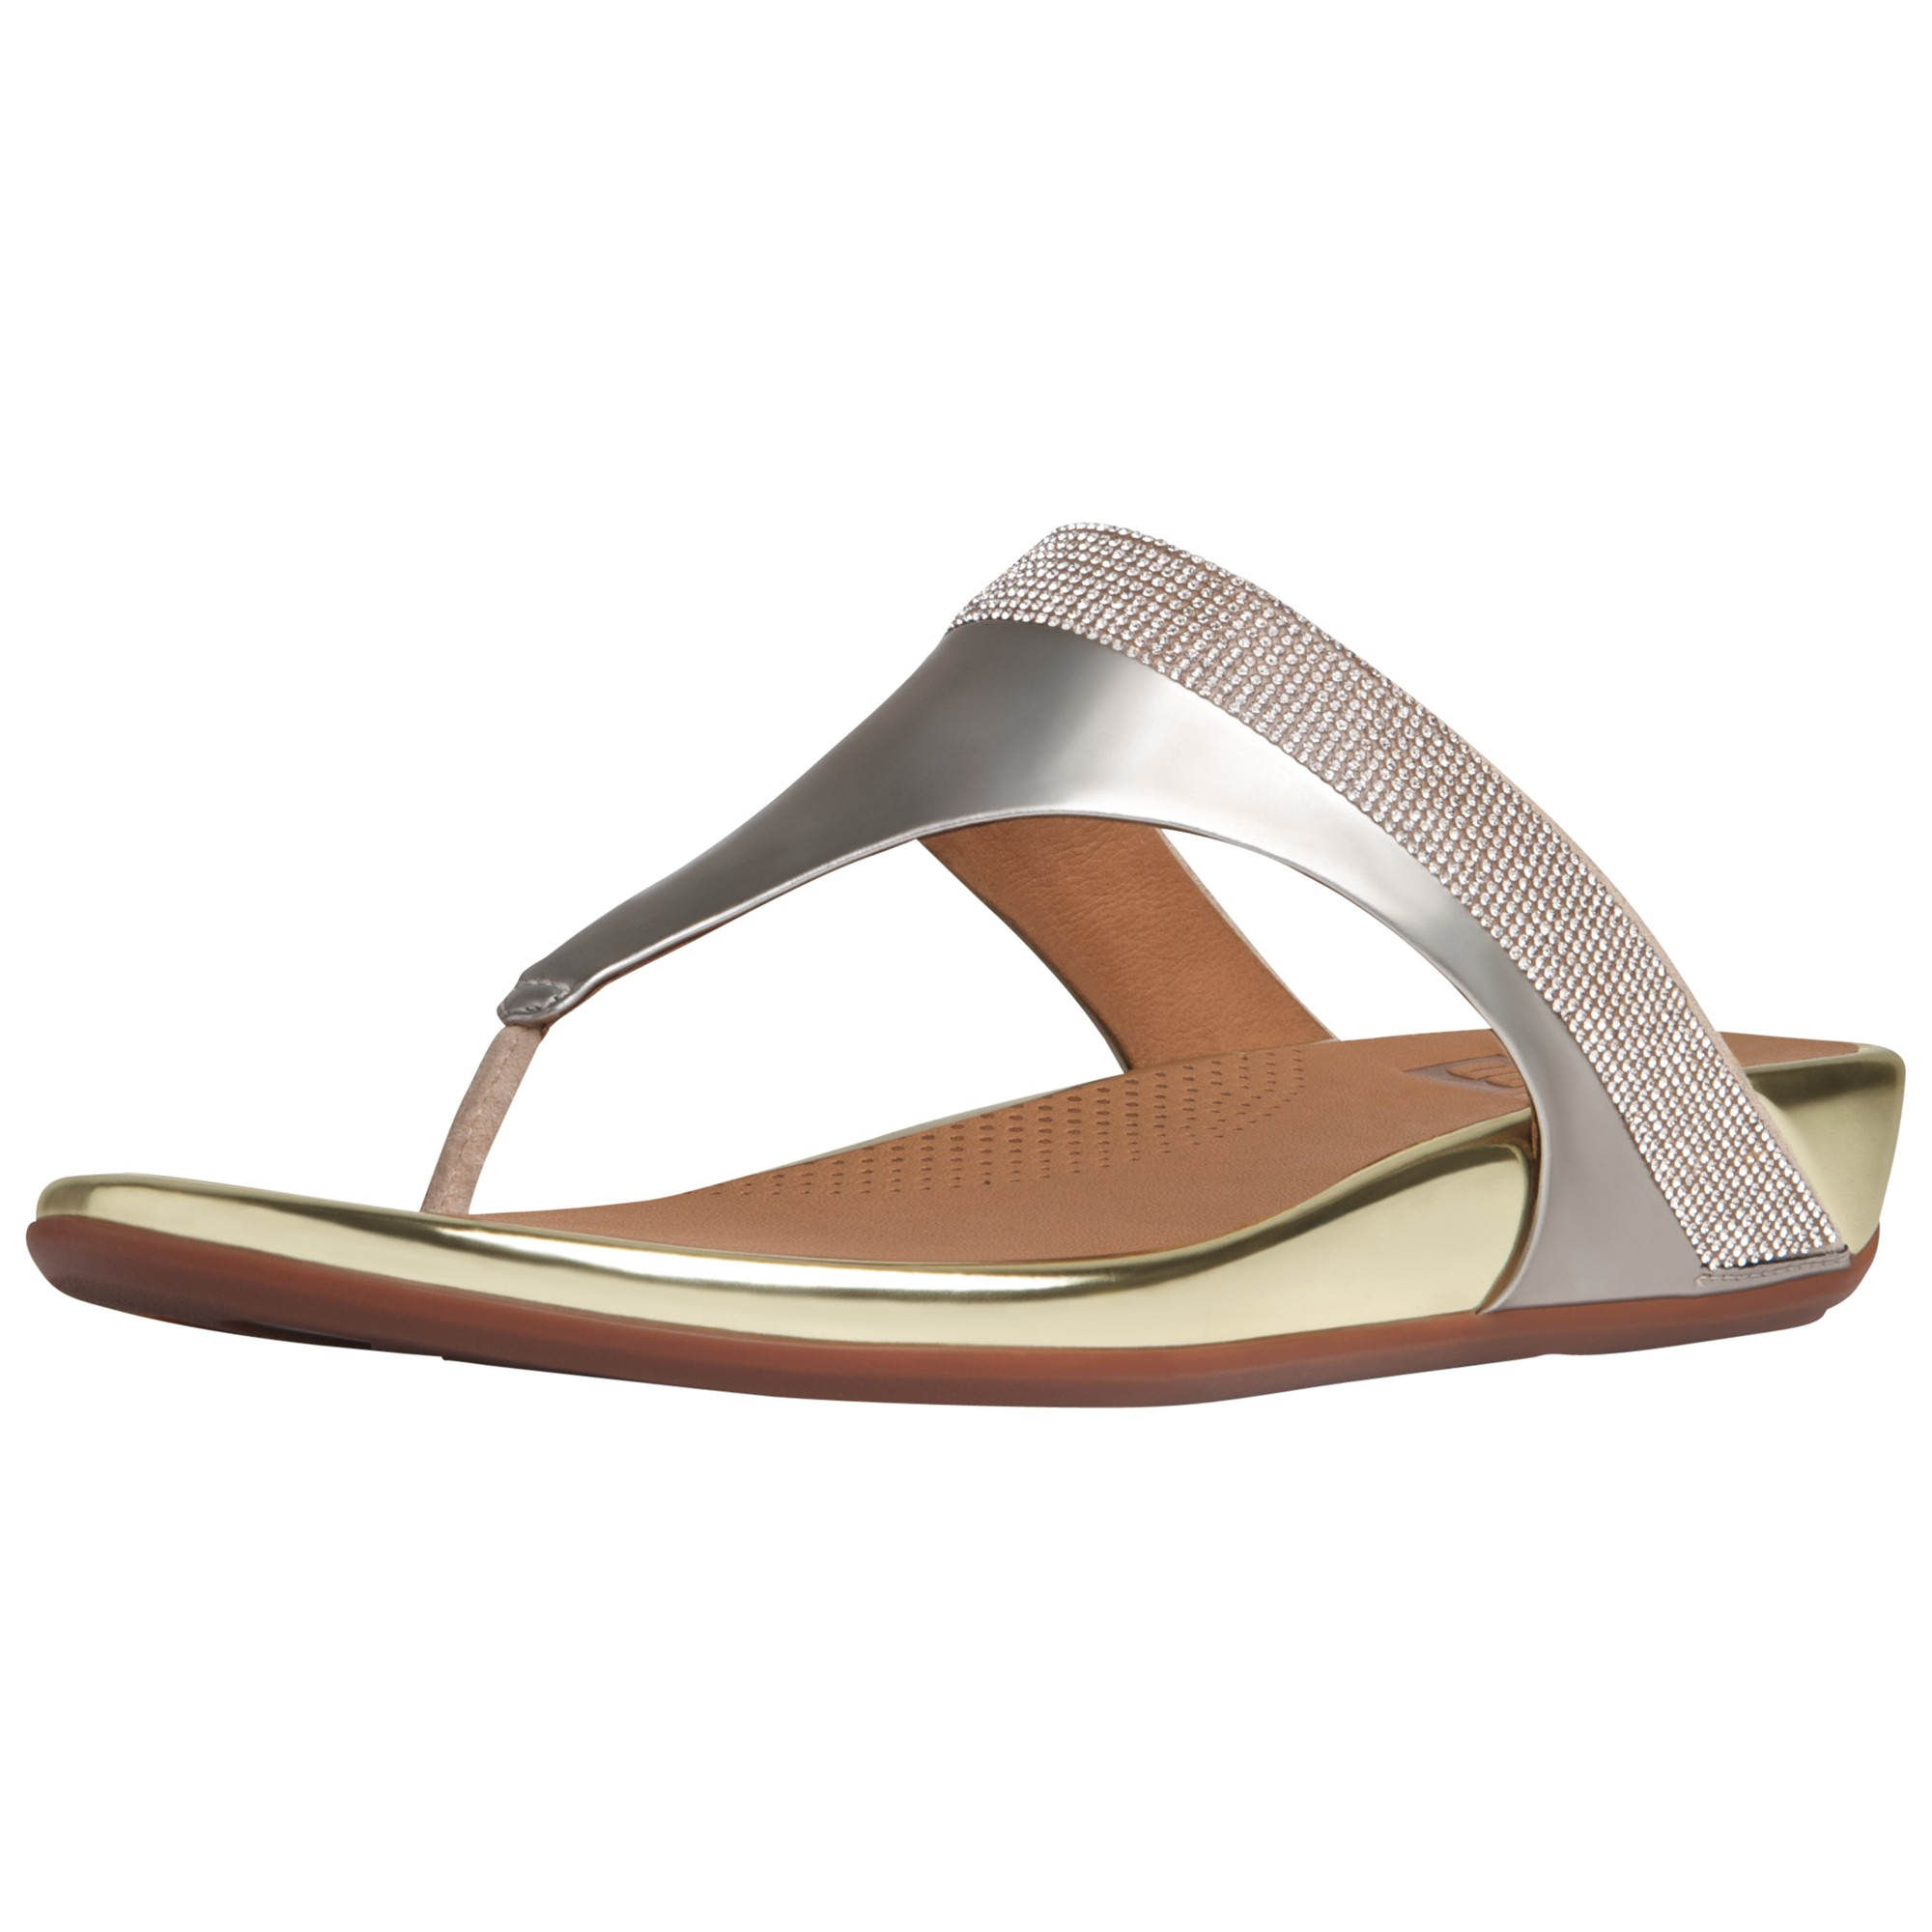 81767be49c367 Fitflop Banda Opul Leather Toe Post Sandals in Metallic - Lyst